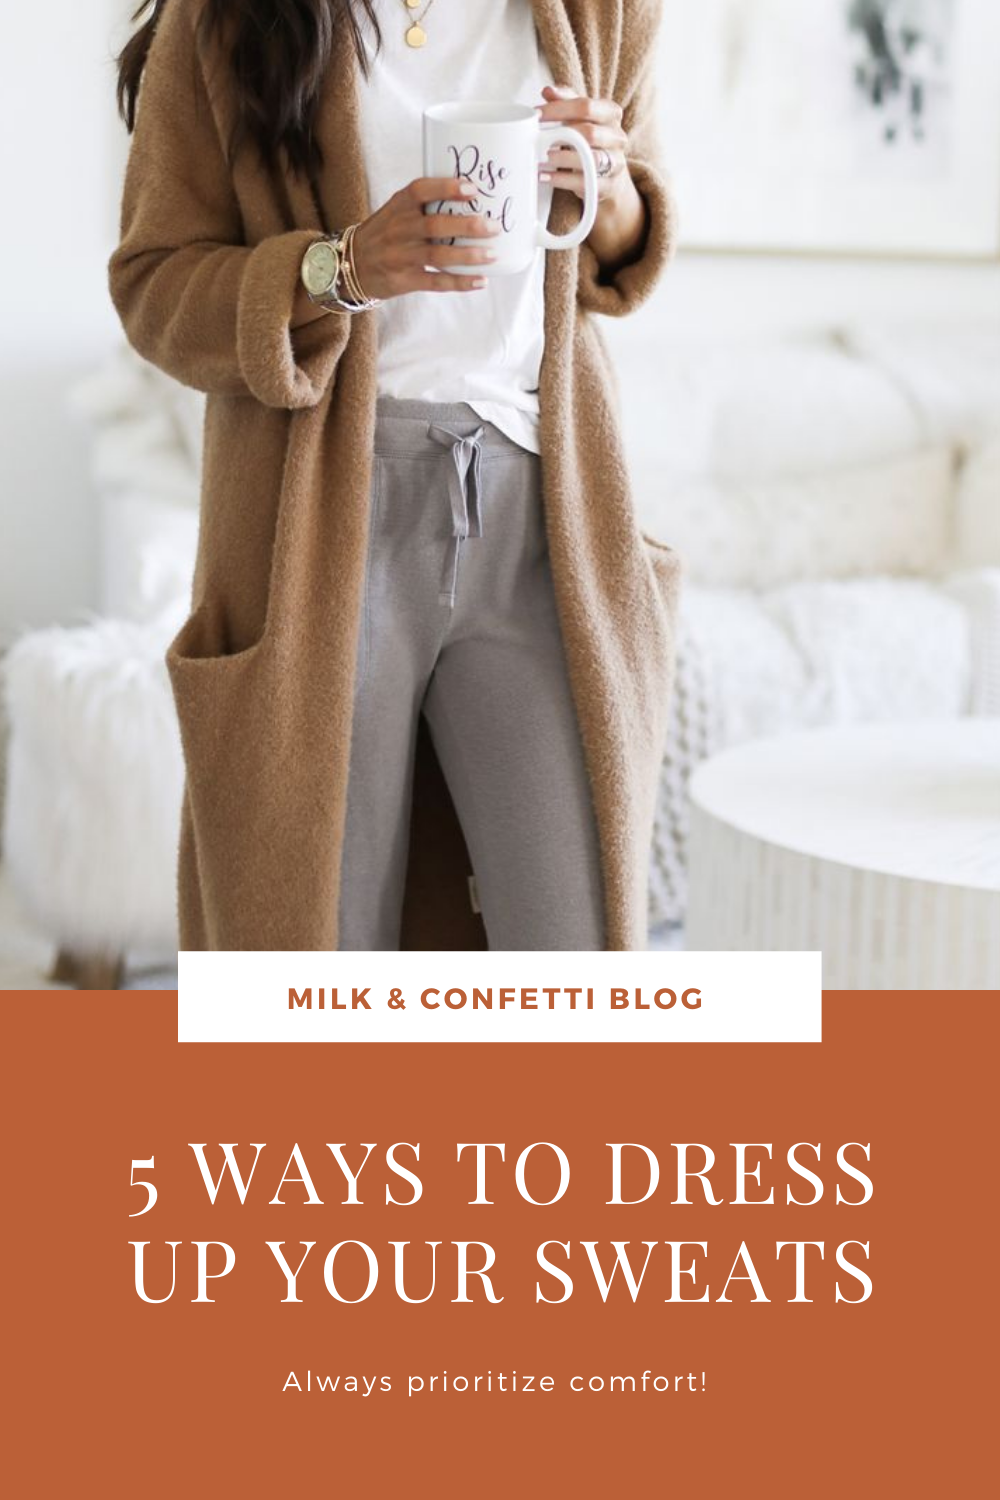 Is your wardrobe in a lockdown slump? Here are 5 simple and cute ways to dress up your sweats and loungewear.